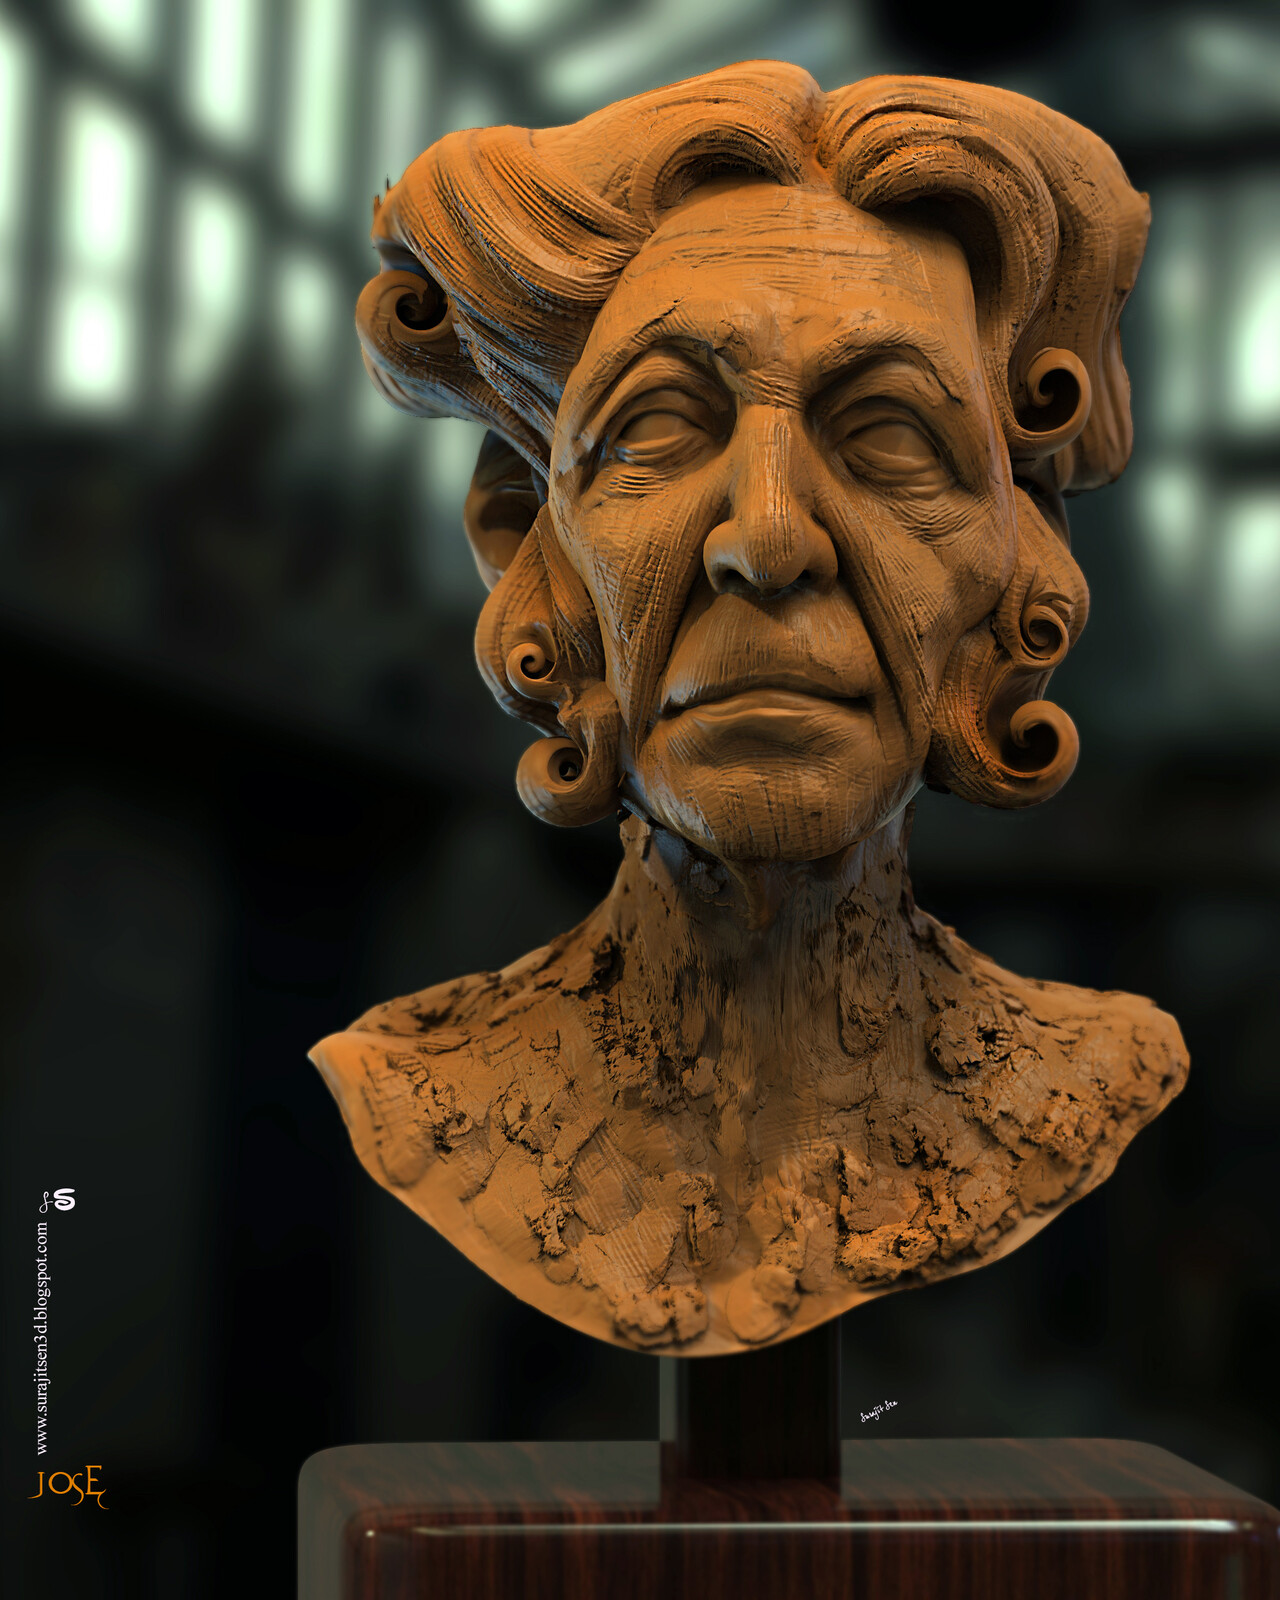 Quick blocking Digital Sculpture Study work Jose Background music- #hanszimmermusic